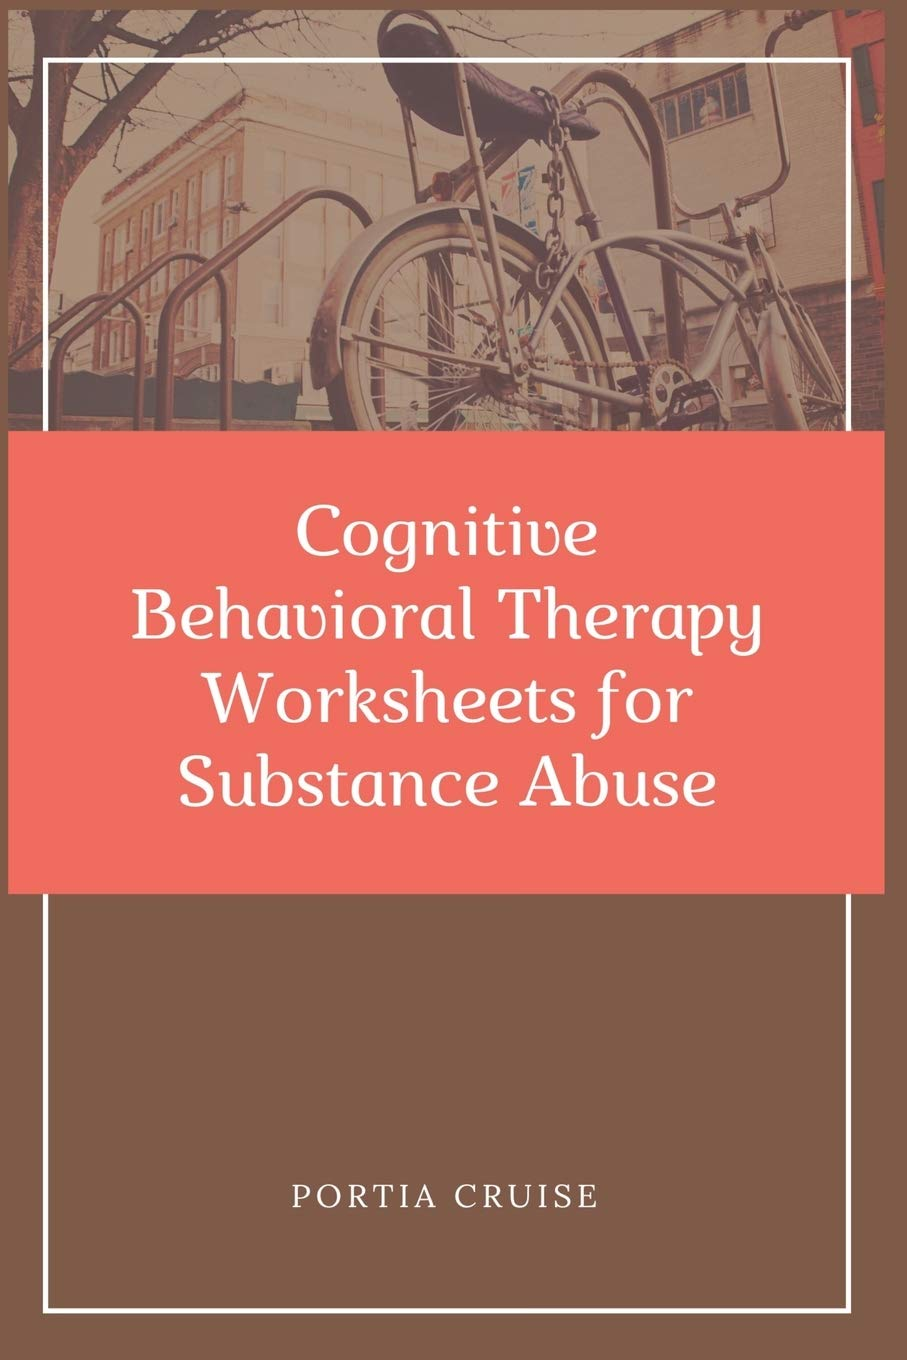 Cognitive Behavioral Therapy Worksheets For Substance Abuse Cbt Workbook To Deal With Stress Anxiety Anger Control Mood Learn New Behaviors Regulate Emotions Cruise Portia 9781700735102 Amazon Com Books